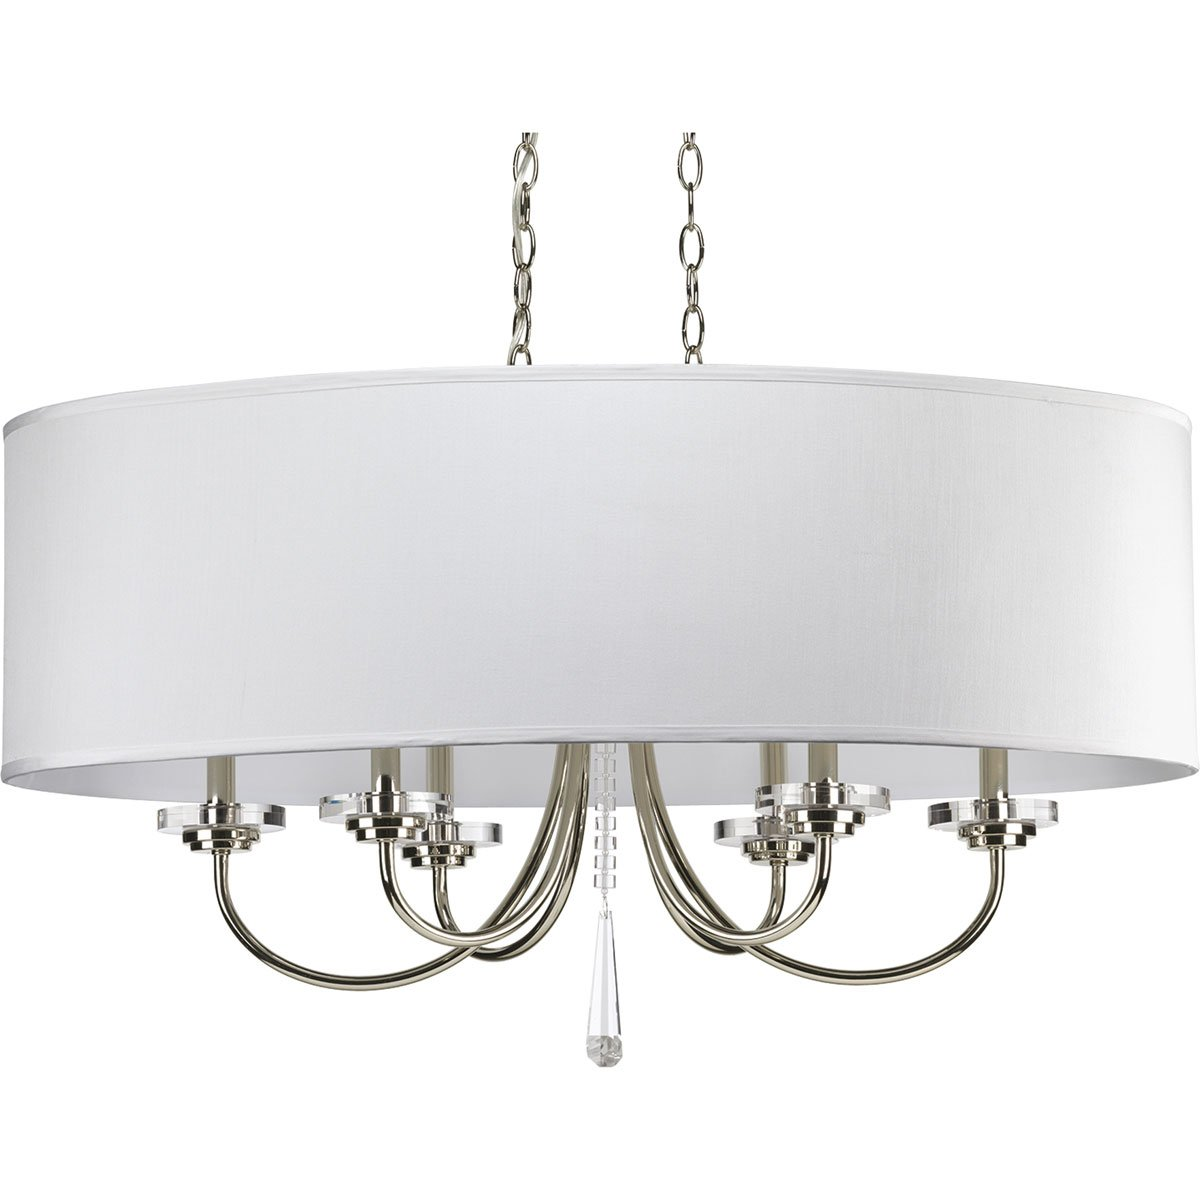 kw chandelier medium polished gild nickel product kelly oval strada in comfort modern wearstler visual